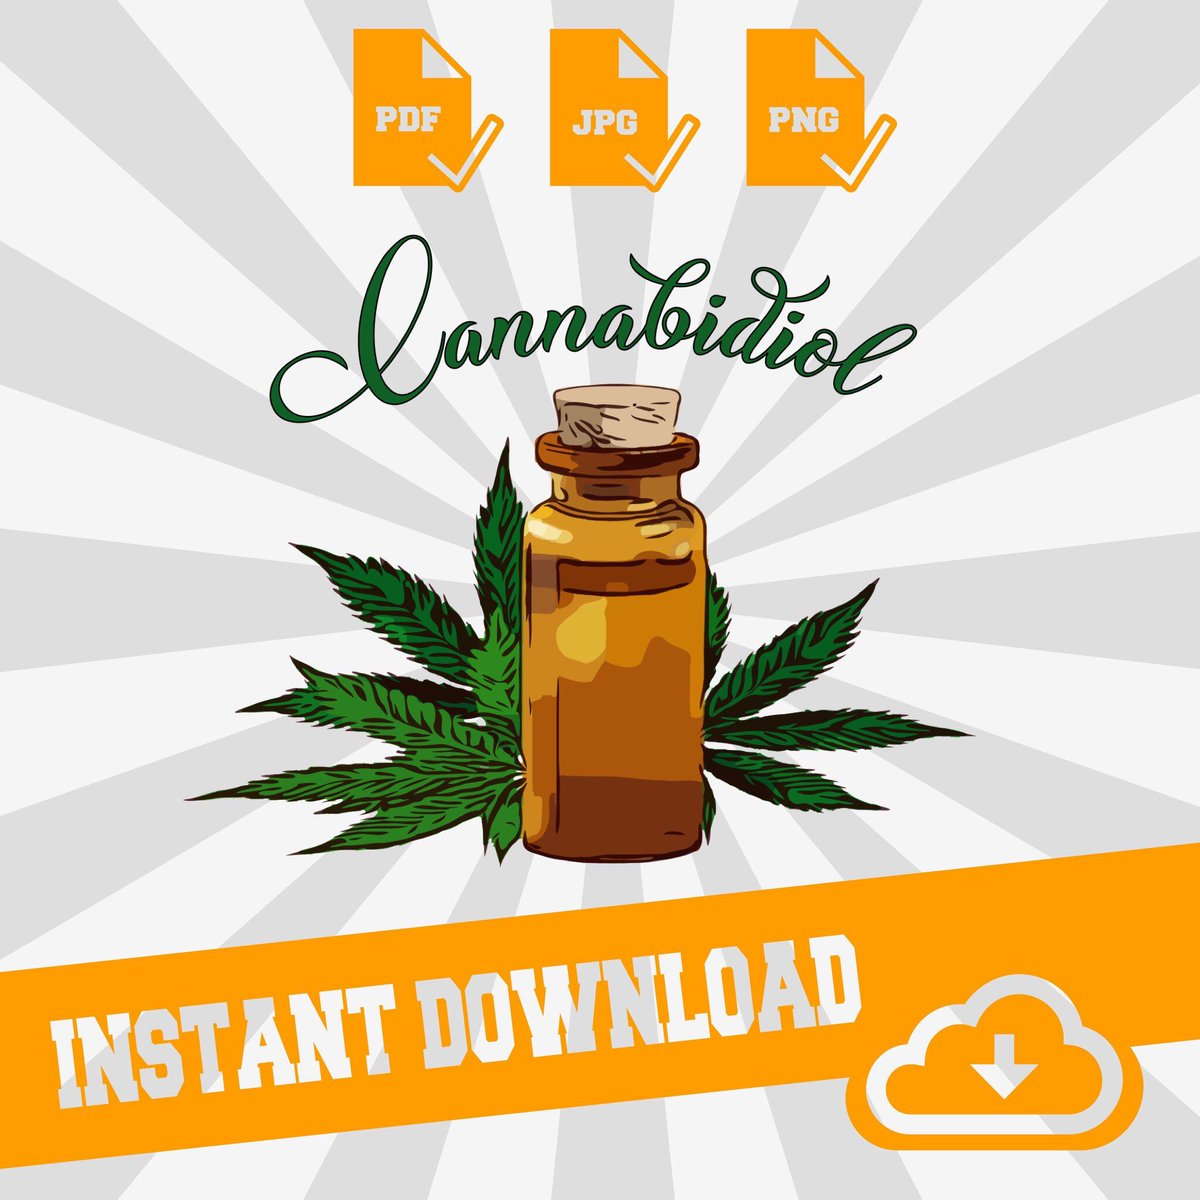 Excited to share this item from my #etsy shop: Cannabidiol - png - pdf- jpg | Instant Download | For T-shirt's - Decals - Sublimation Printing - & Much More #art #print #bestbuds #digital #flowers #hempoil #cbdoils #cbdpets #cannabis  #cbdoil #sublimation